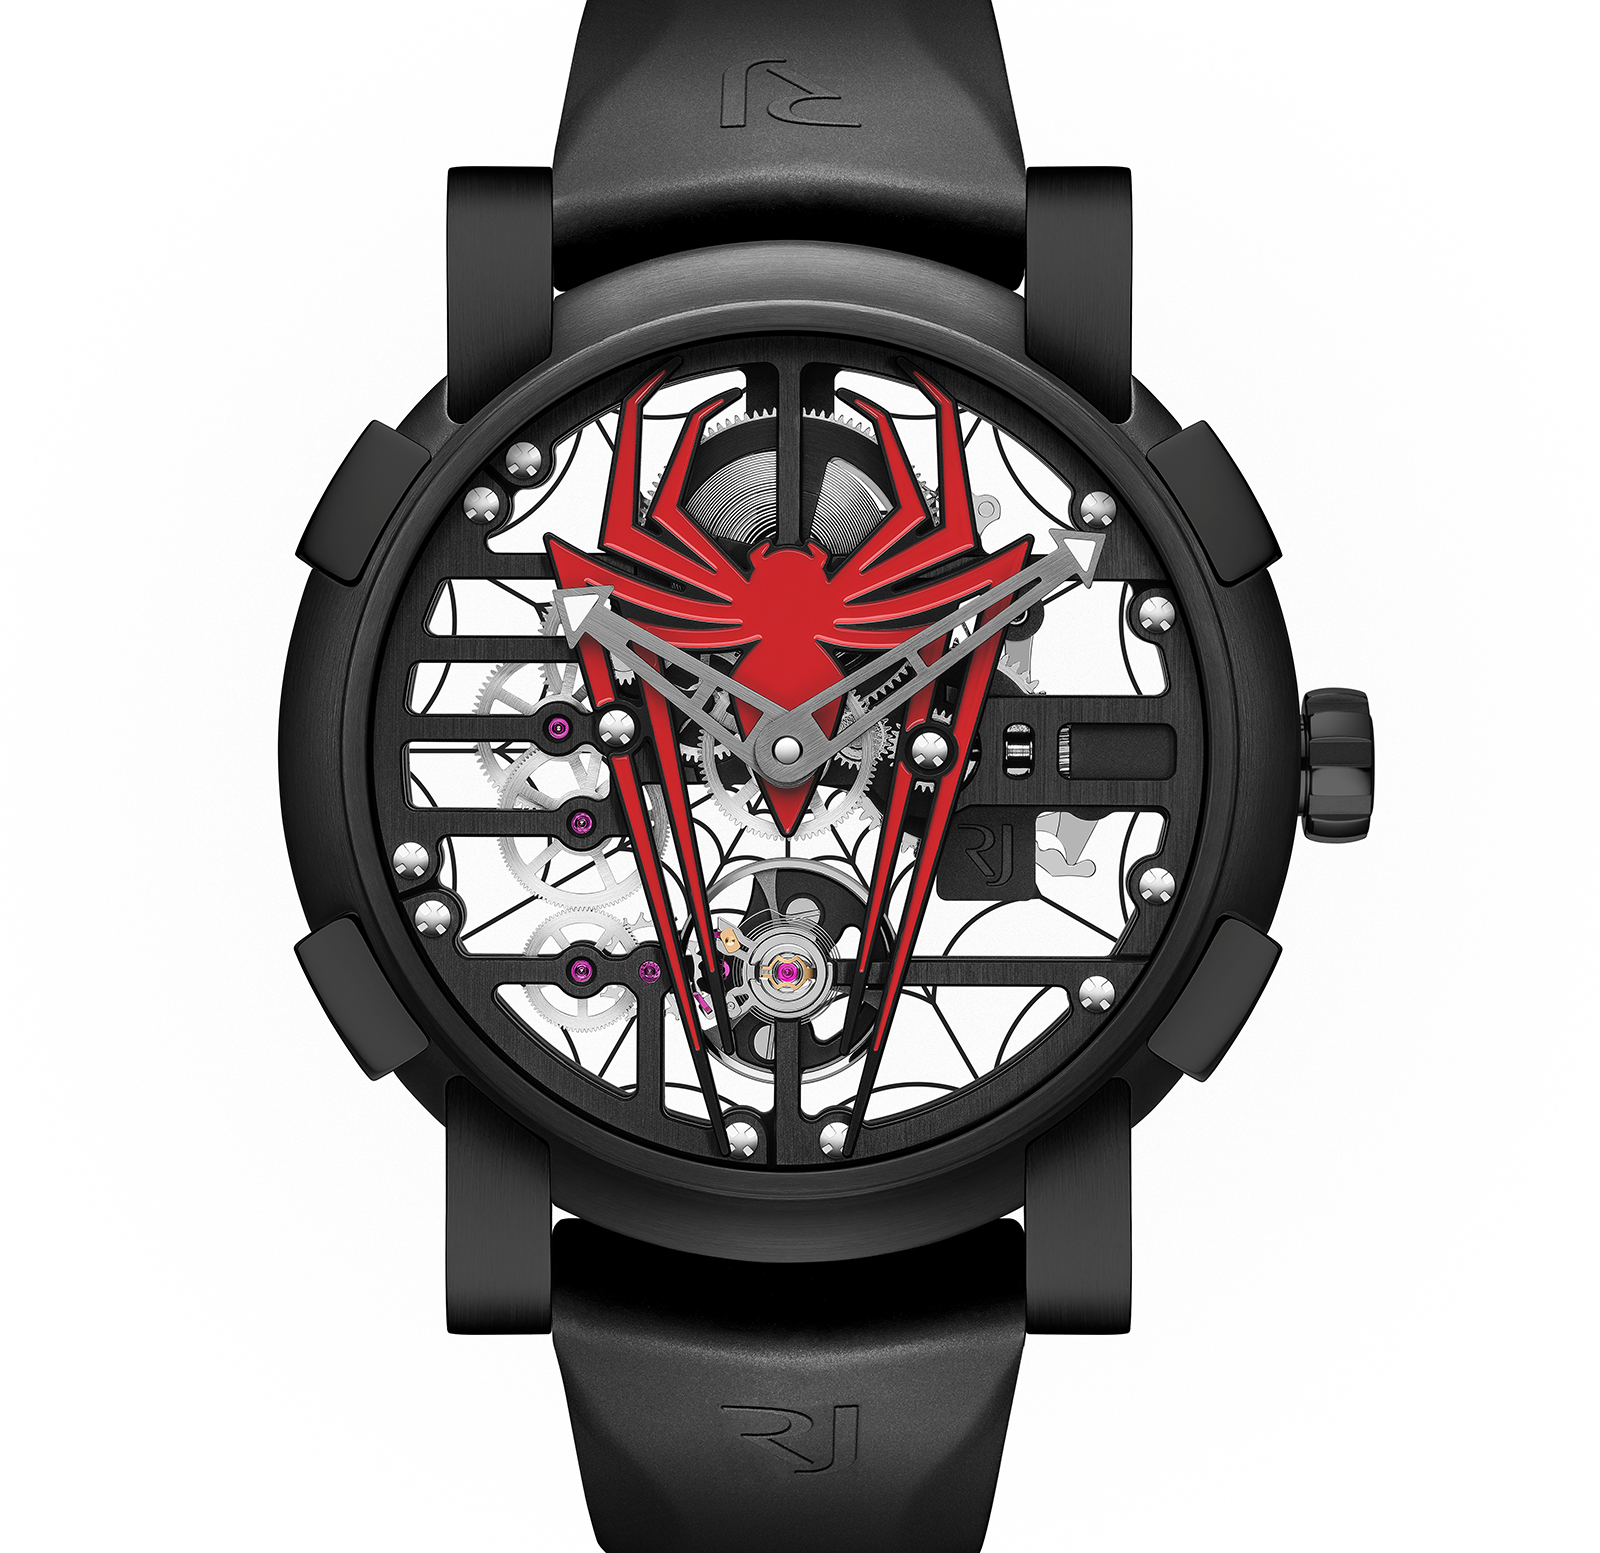 Sihh 2018 romain jerome puts spider man on the wrist sjx watches for Spiderman watches